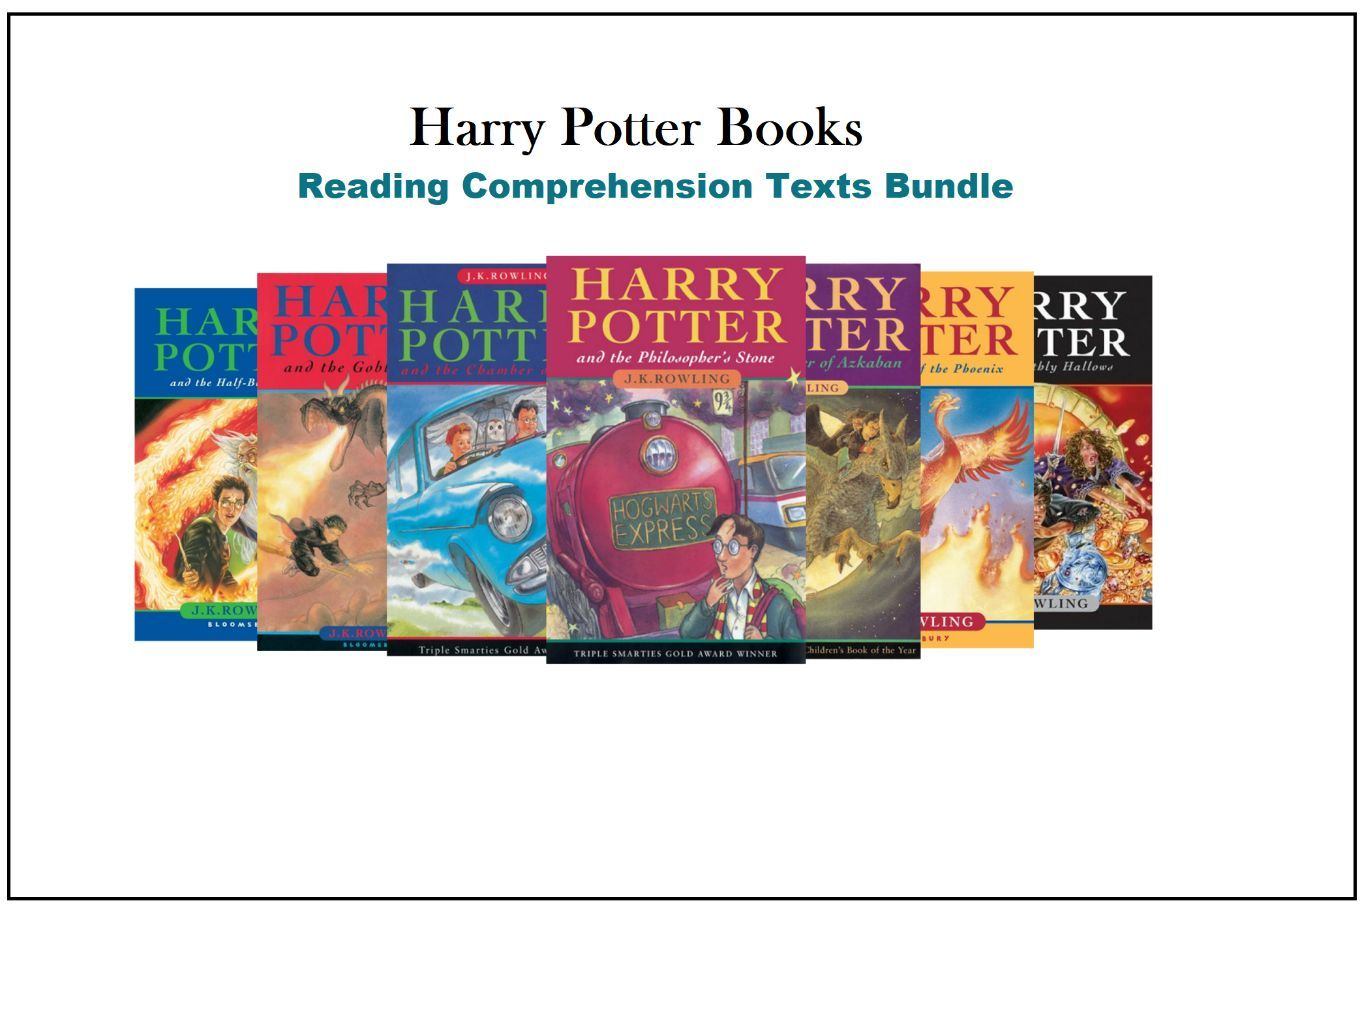 Harry Potter Reading Comprehension Texts Bundle / Novel Summaries